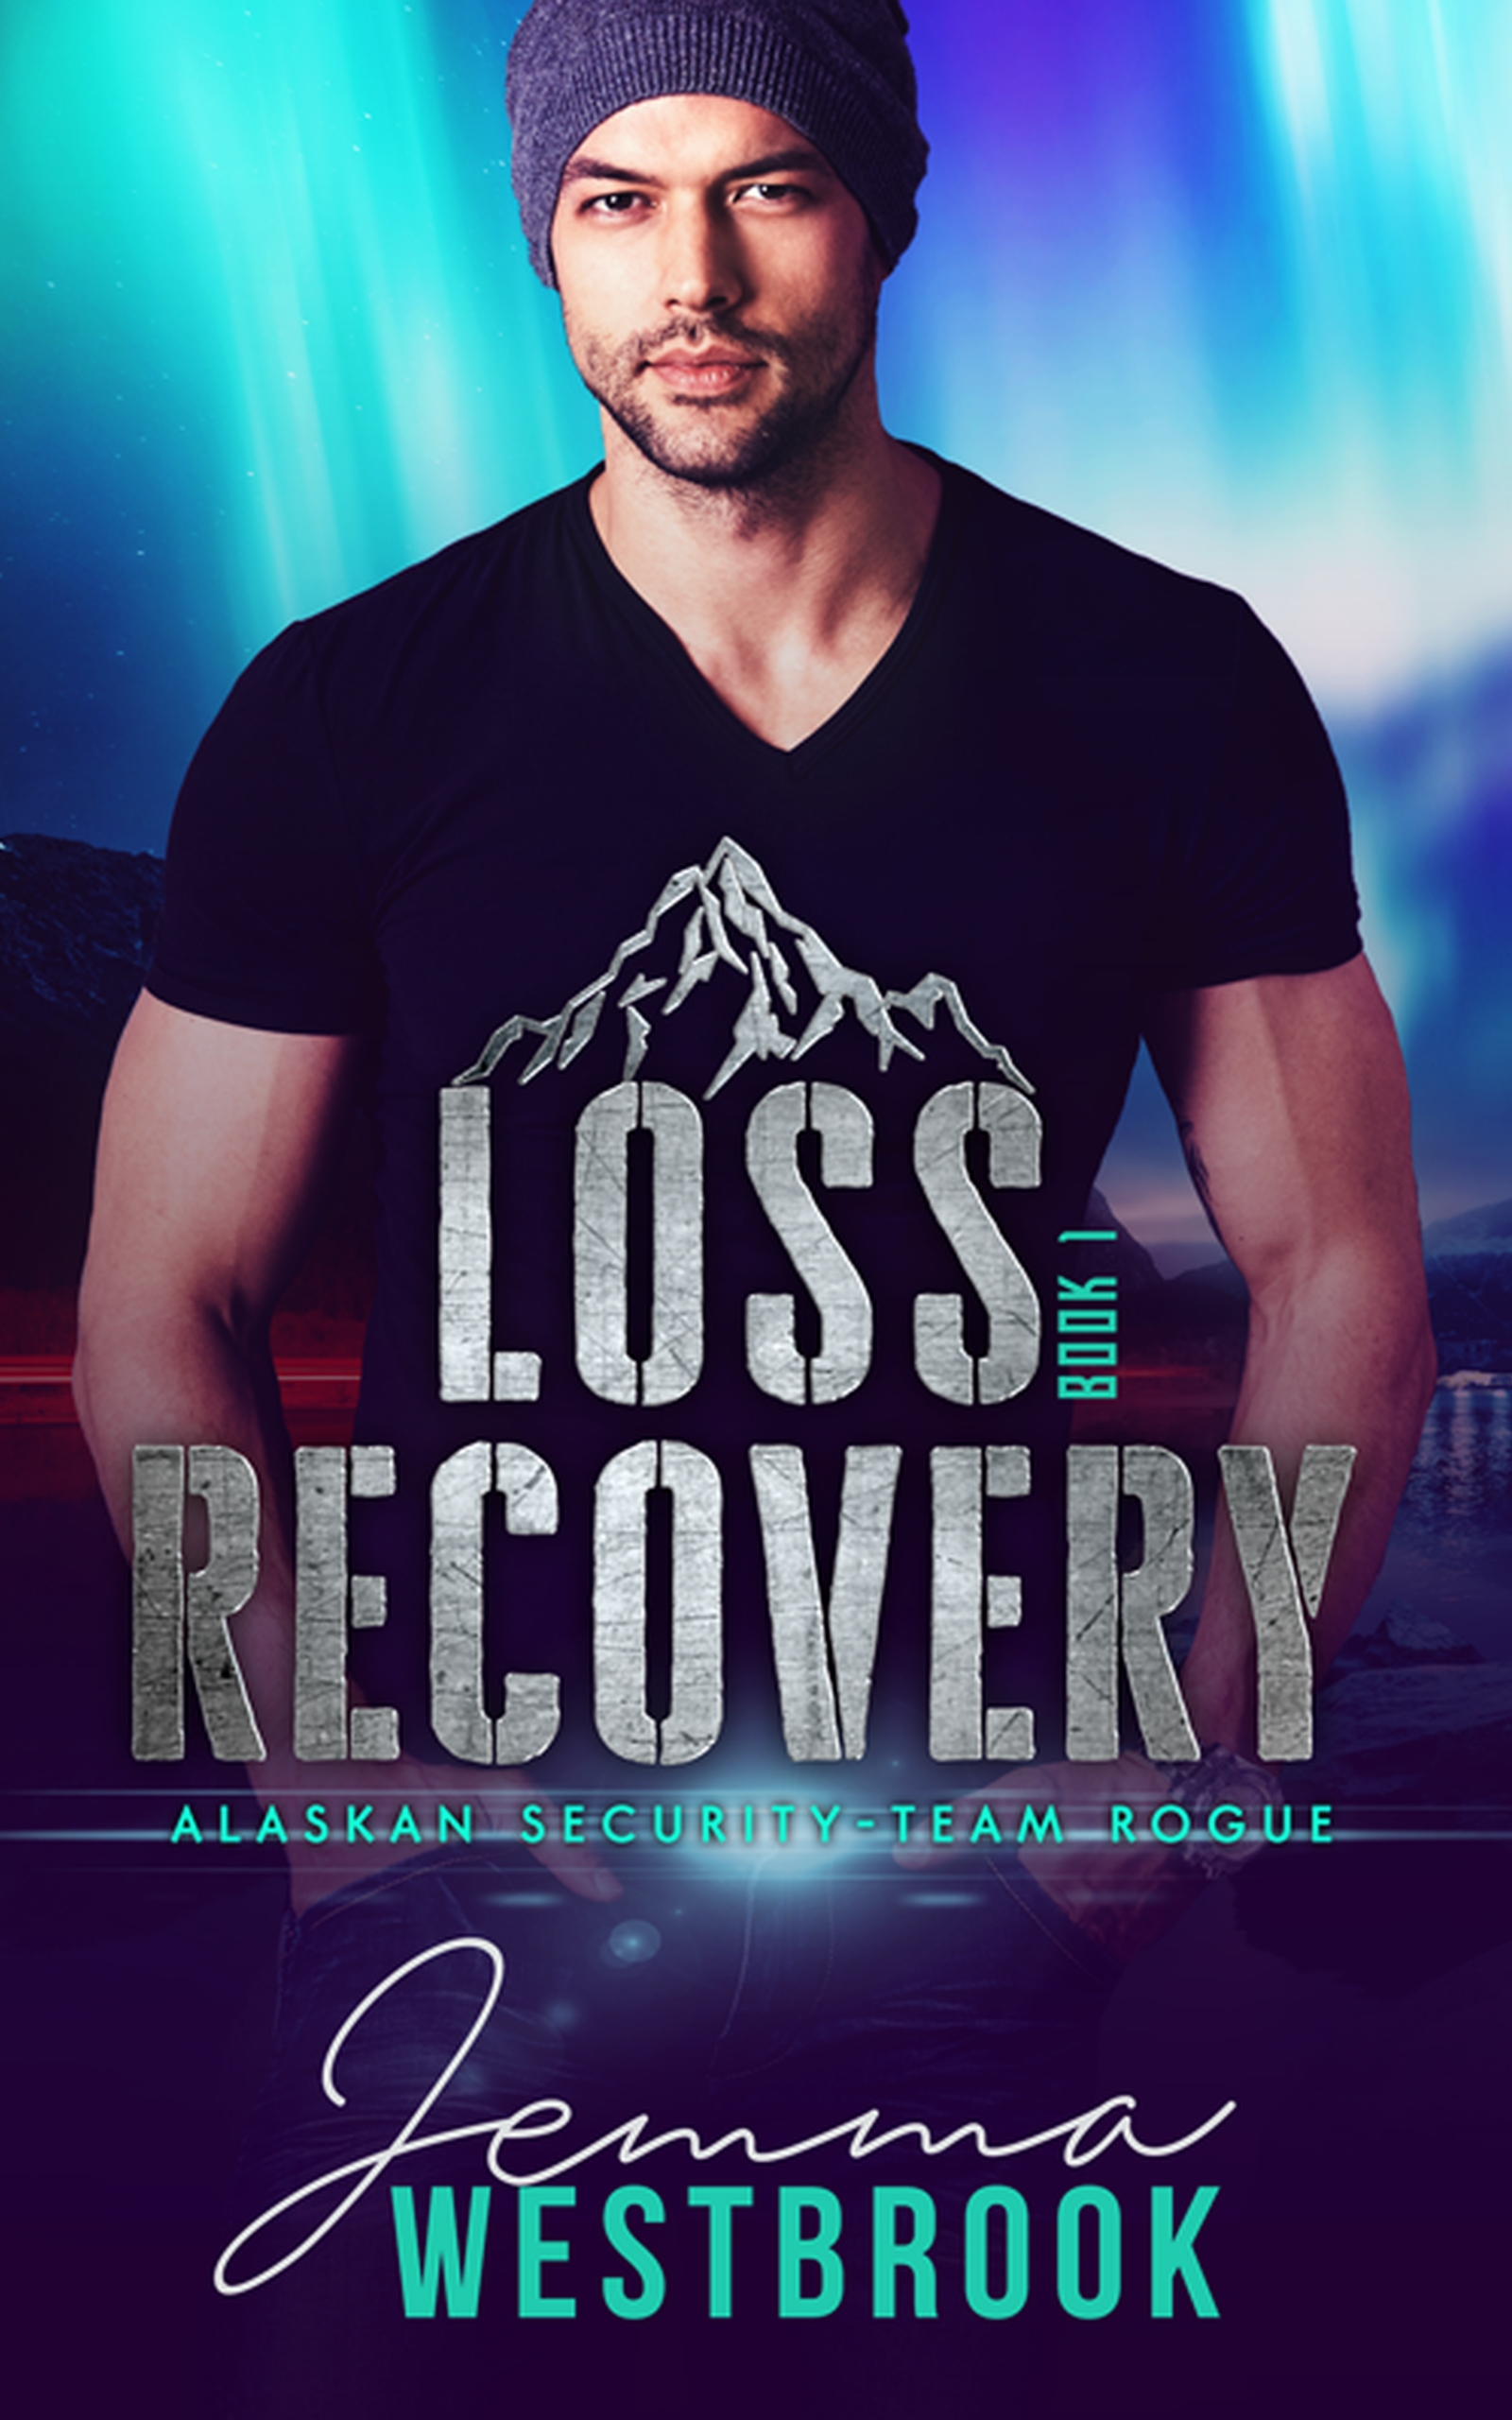 Loss Recovery (Alaskan Security-Team Rogue, #1)